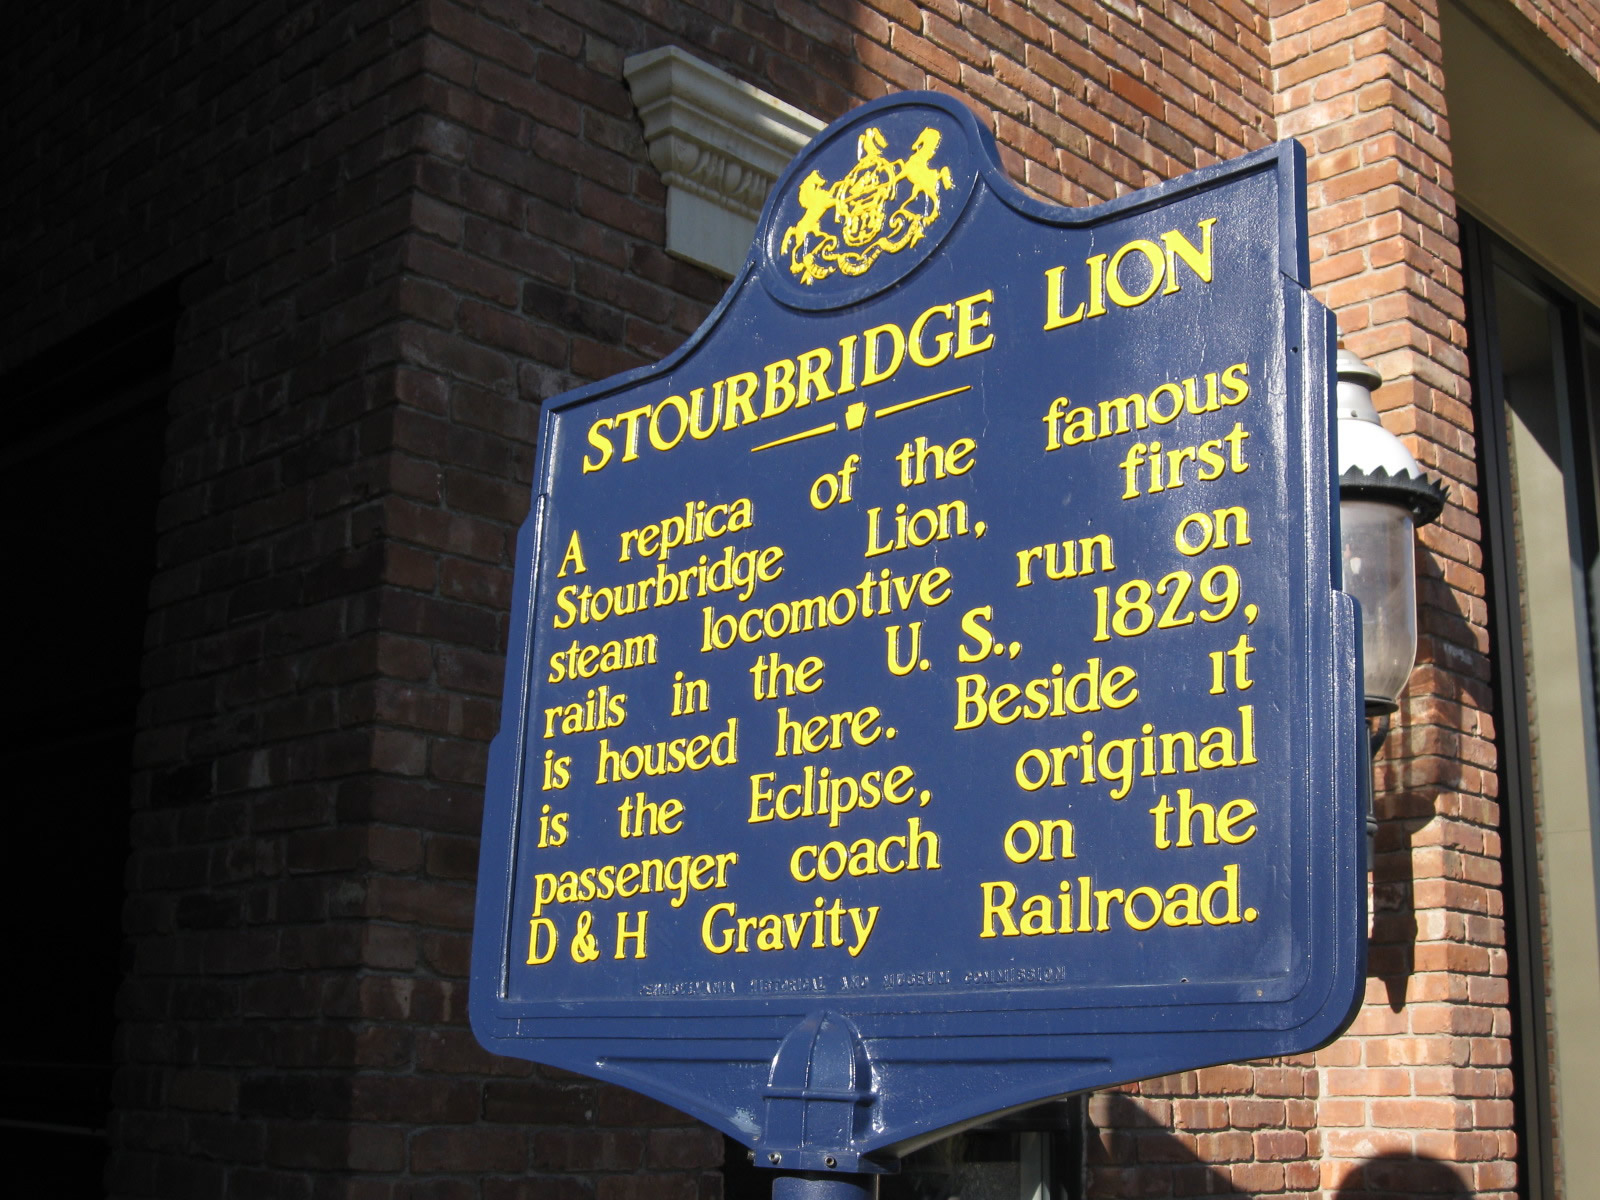 State Historical Marker for the Stourbridge Lion